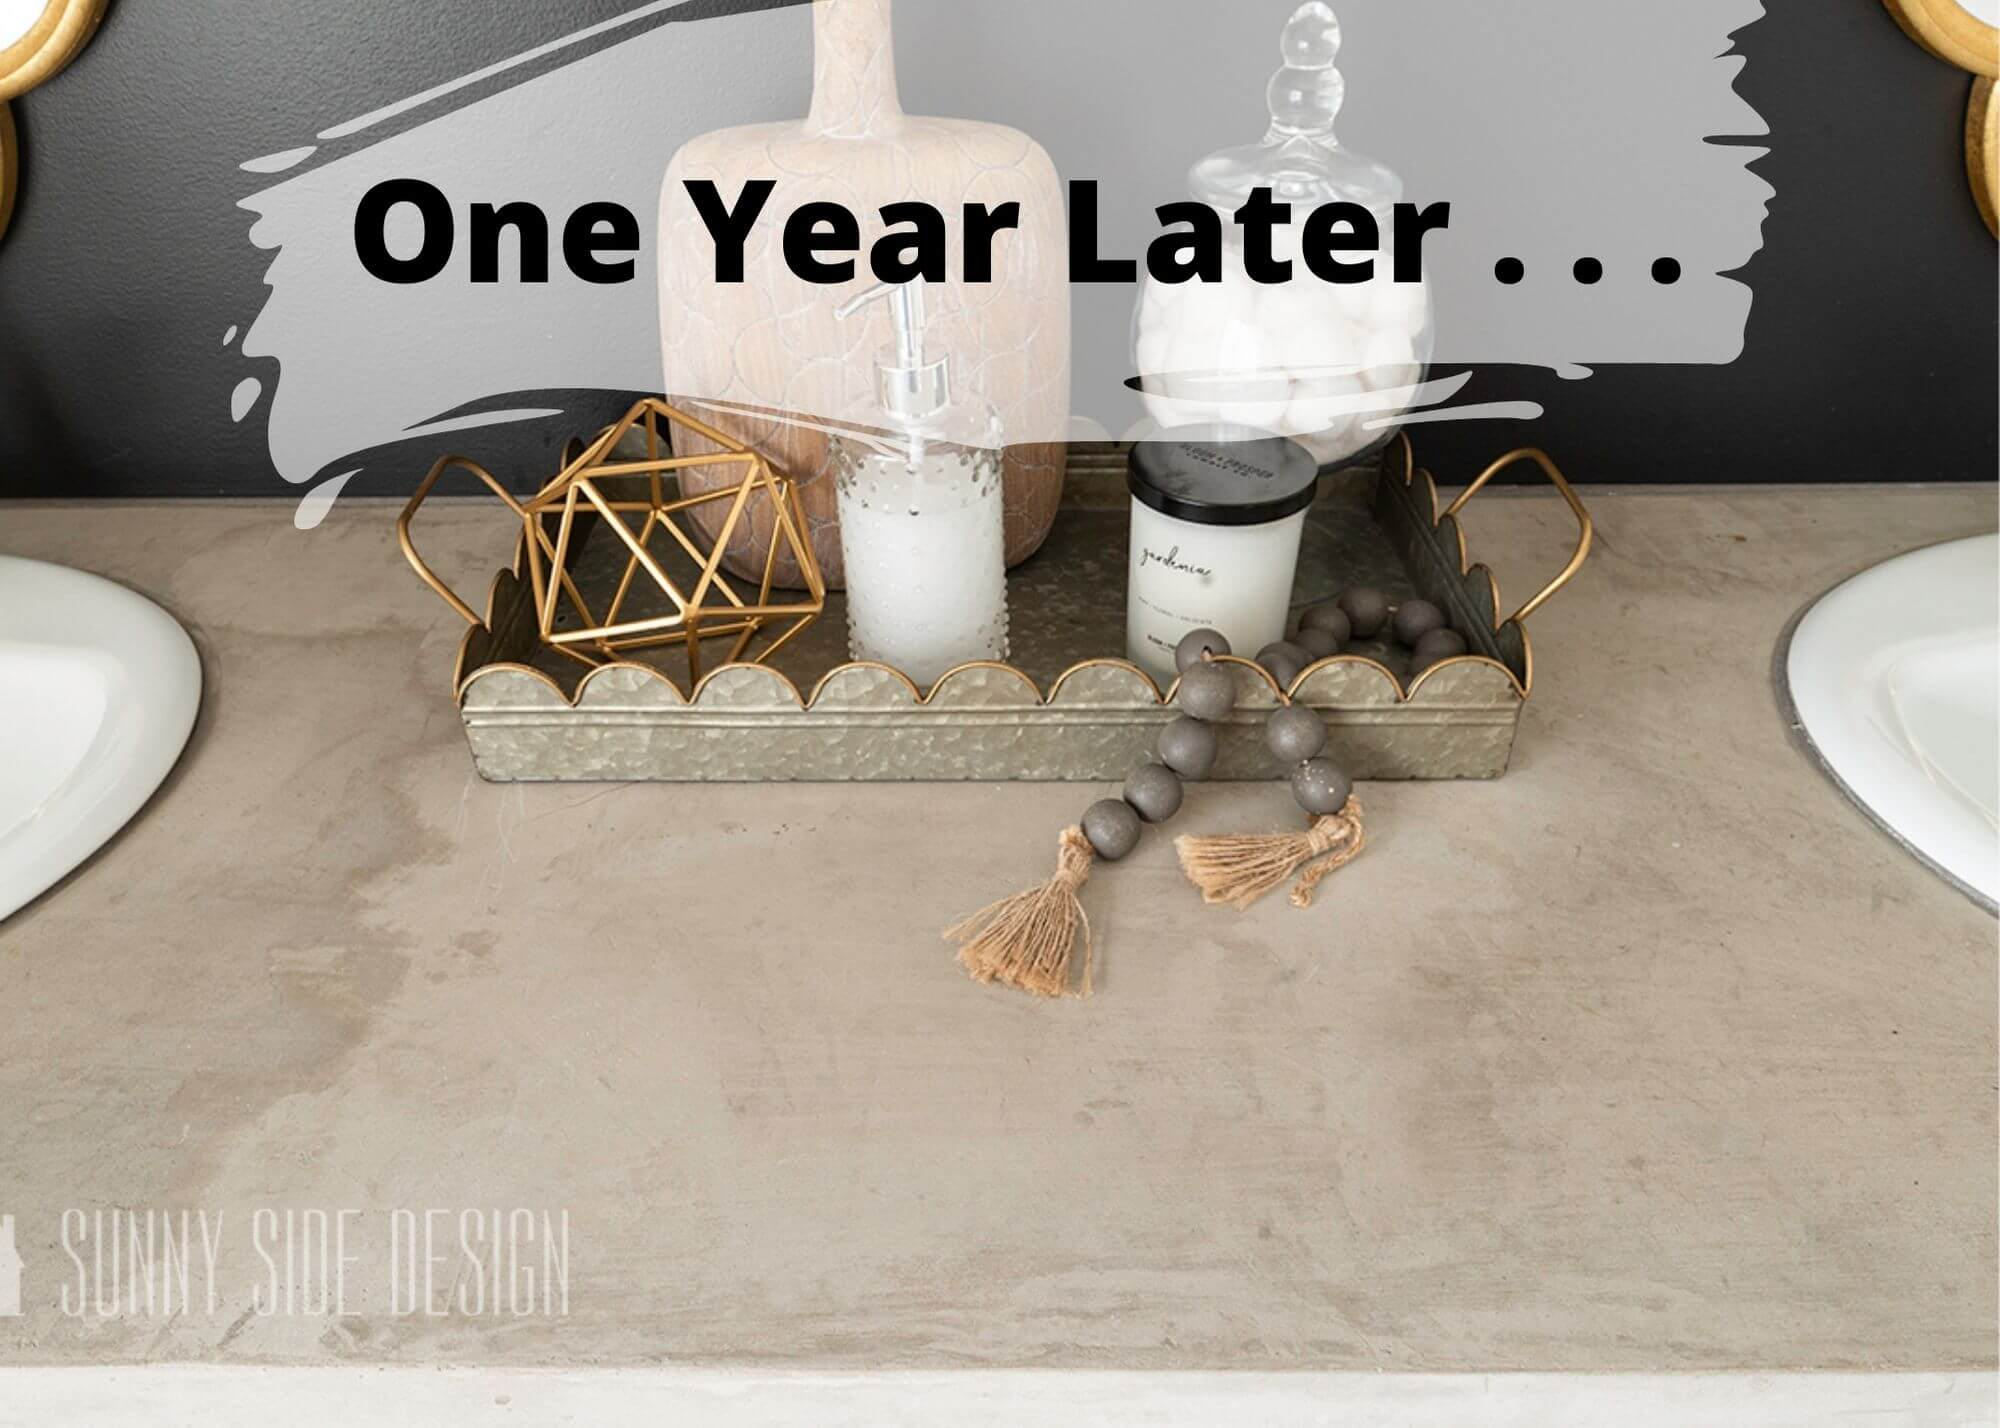 Affordable Feather Finish Countertop | How It Looks One Year Later